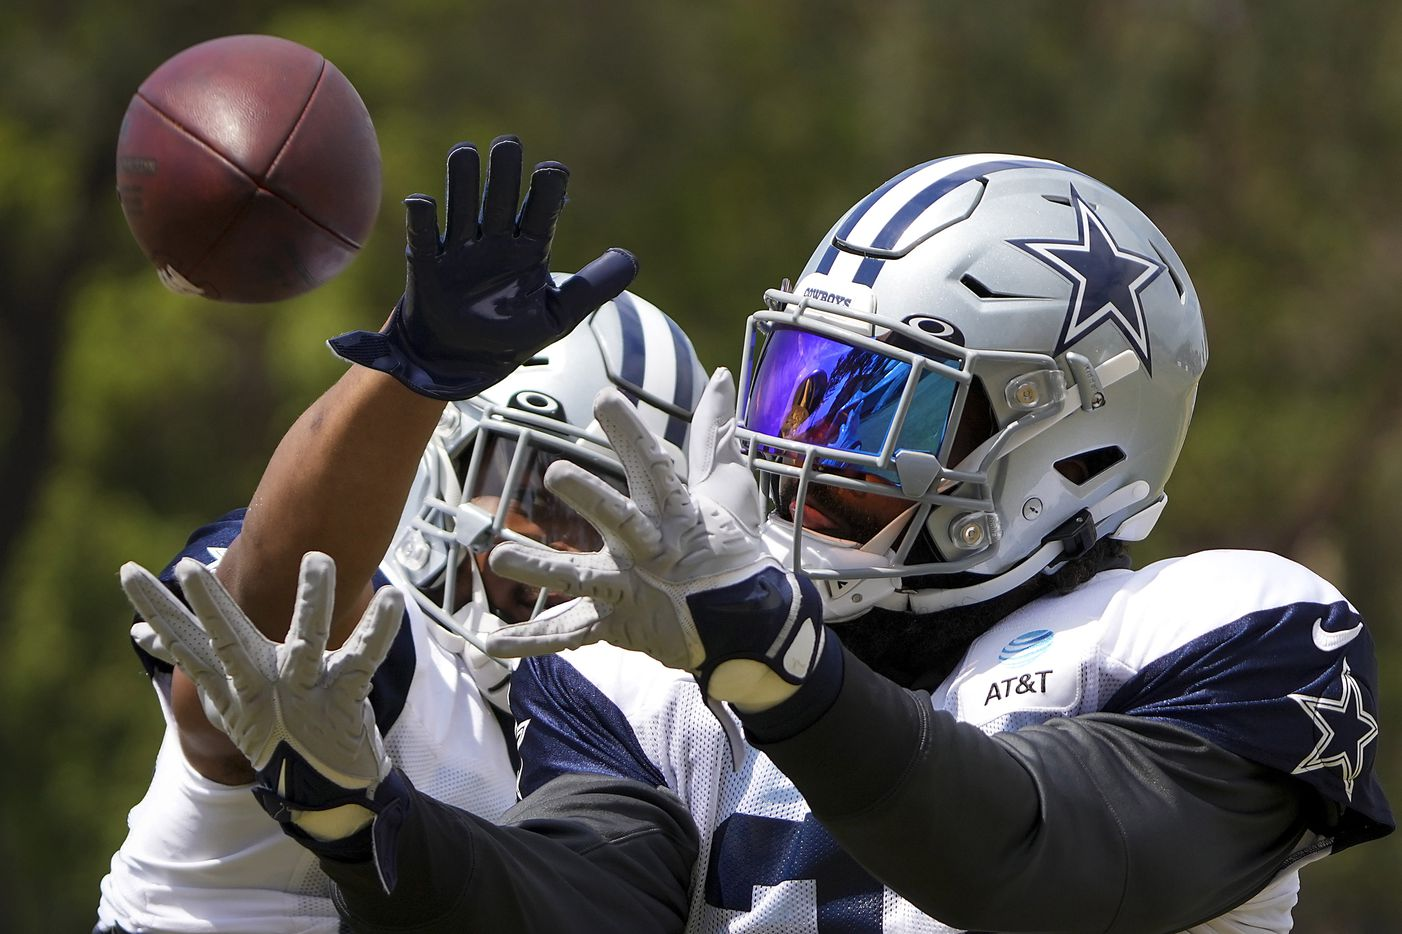 Dallas Cowboys running back Ezekiel Elliott catches a pass in a drill as running back Tony Pollard defends during a practice at training camp on Wednesday, Aug. 11, 2021, in Oxnard, Calif.